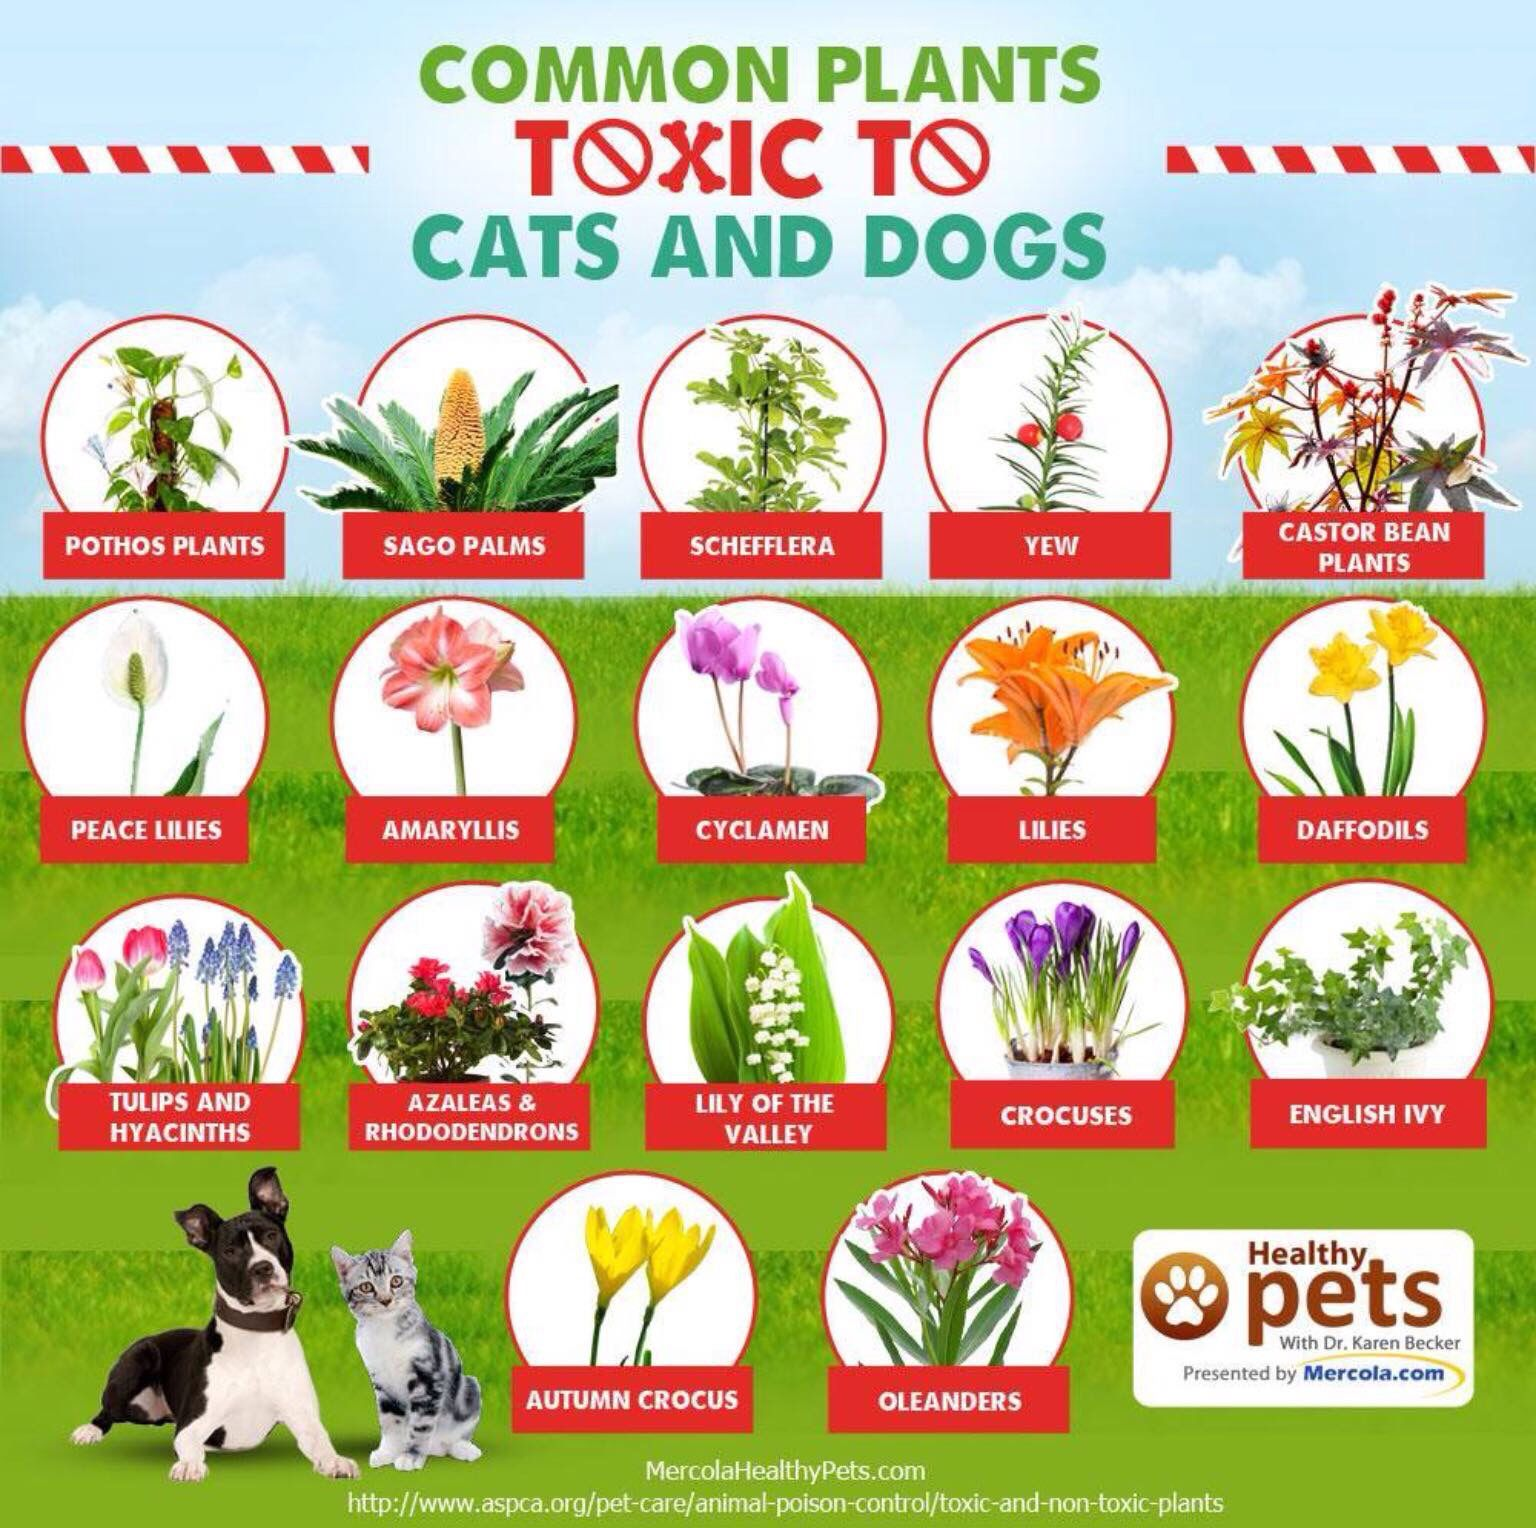 Plants Toxic To Dogs And Cats Cat Plants Toxic Plants For Cats